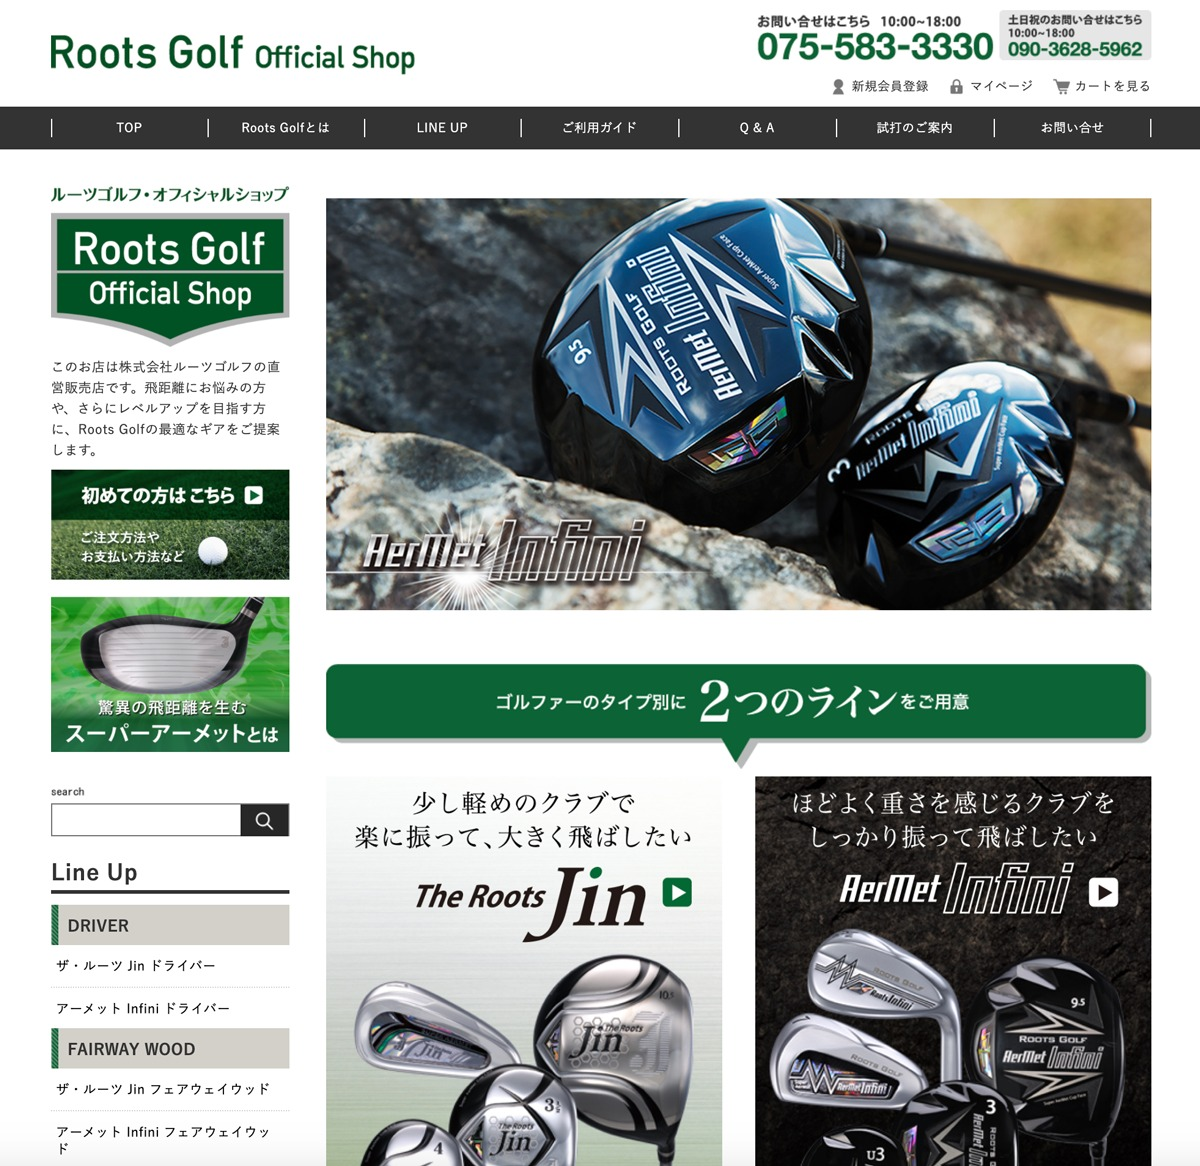 Roots Golf Official Shop